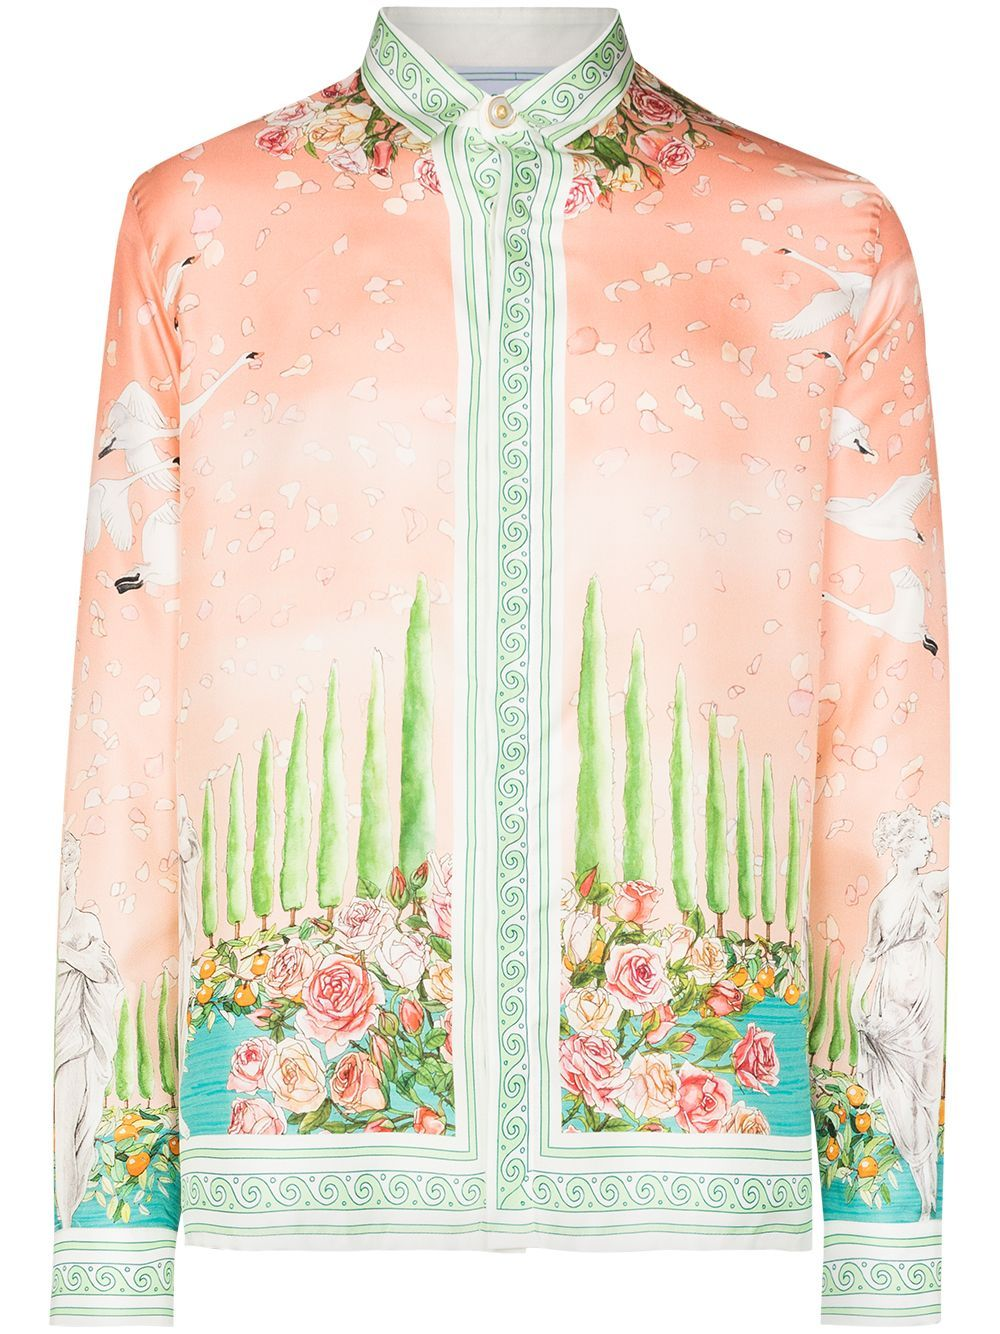 Pink silk Maison De Repos print shirt from CASABLANCA featuring logo print to the rear, spread collar, concealed front button fastening, long sleeves, buttoned cuffs and relaxed shape.